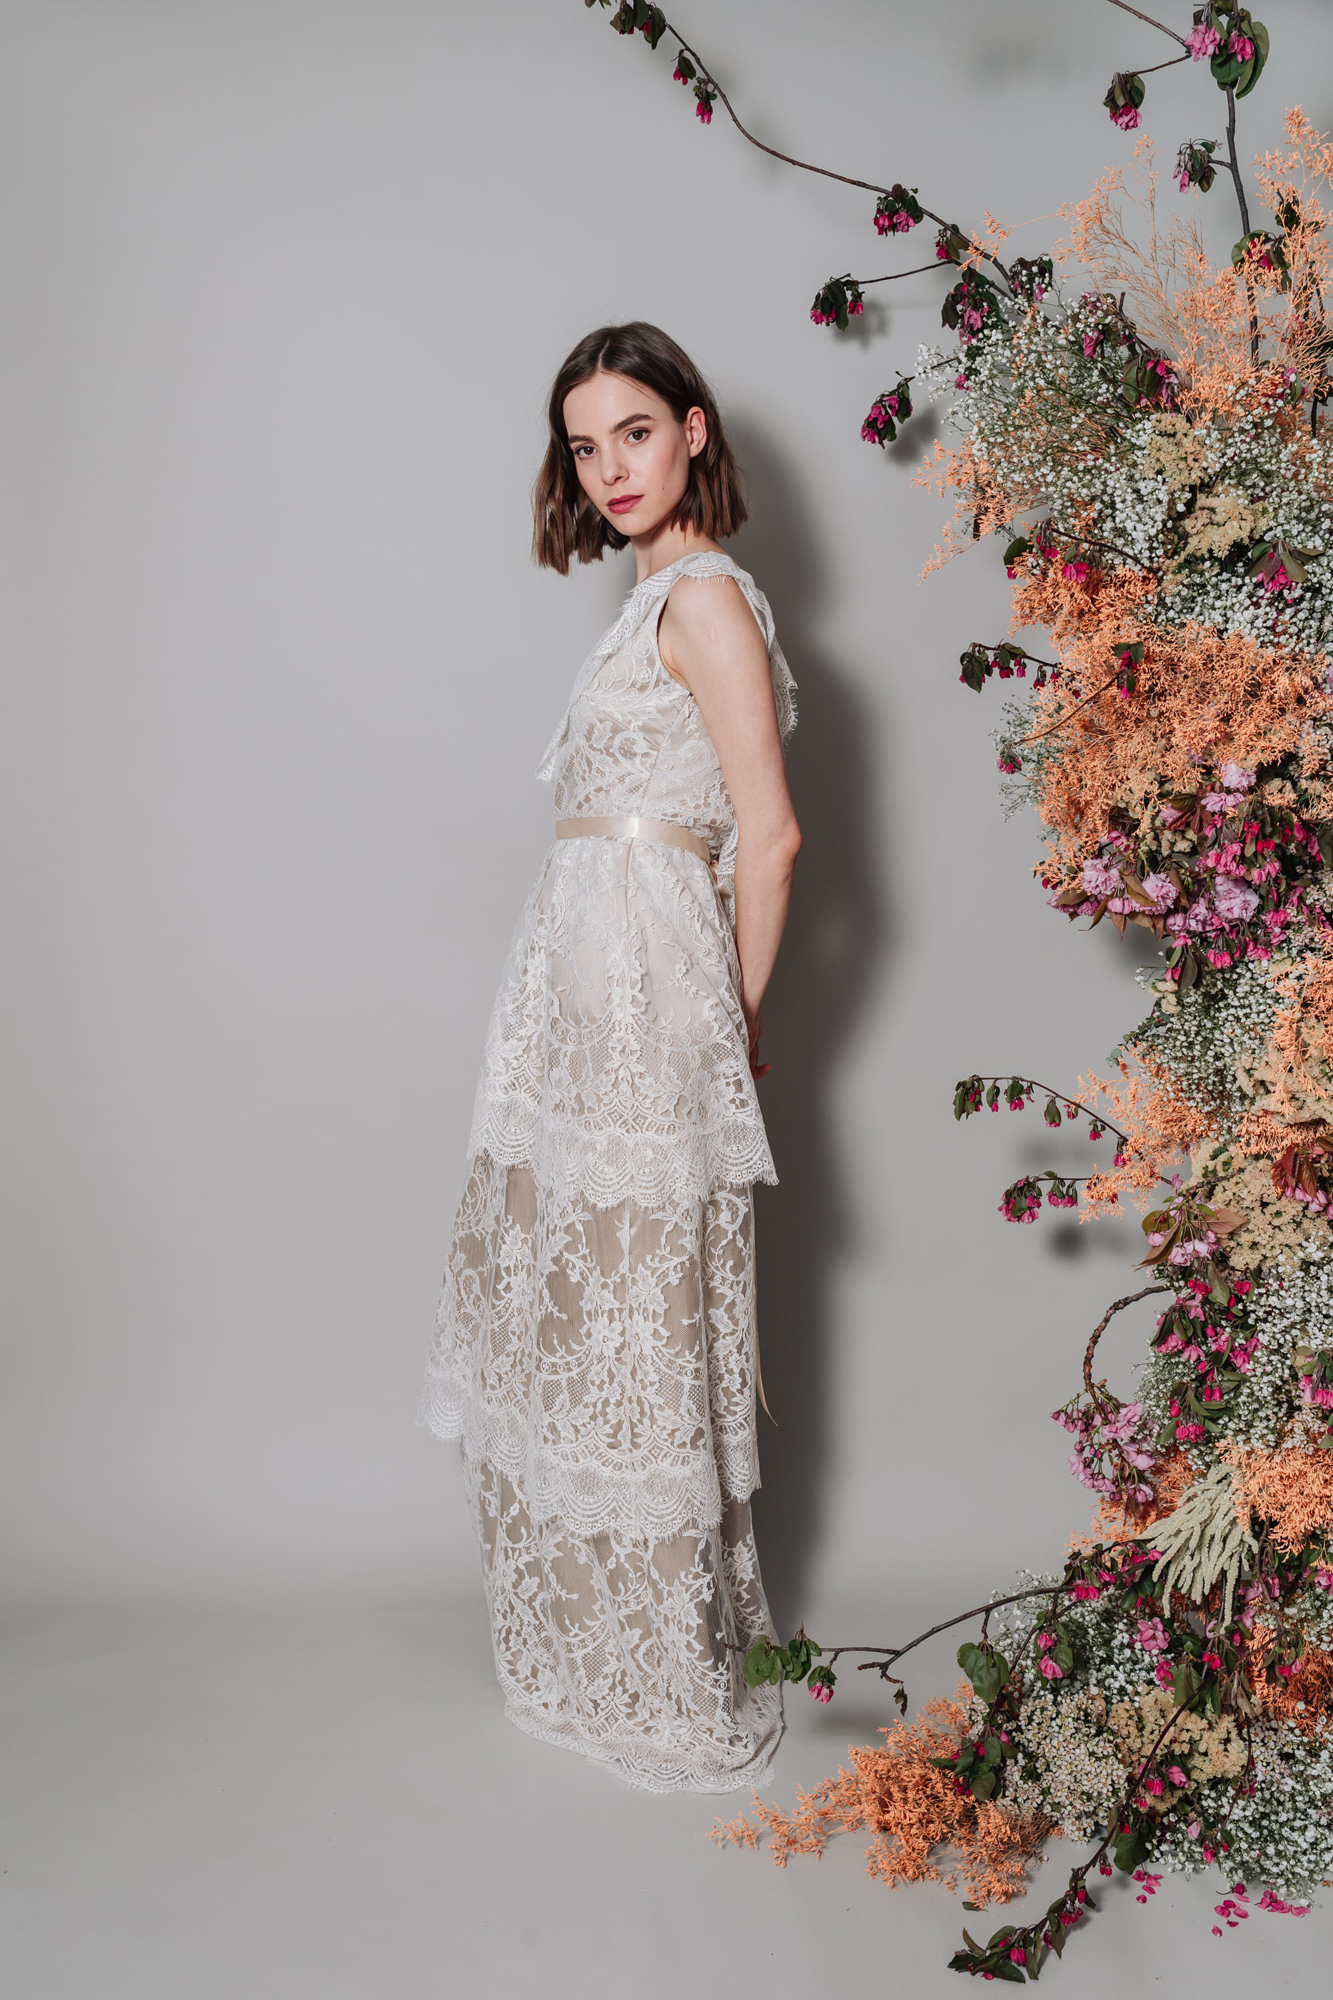 Kate-Beaumont-Sheffield-Wild-Lupin-Bohemian-Lace-Wedding-Gown-Tiered-Skirt-8.jpg